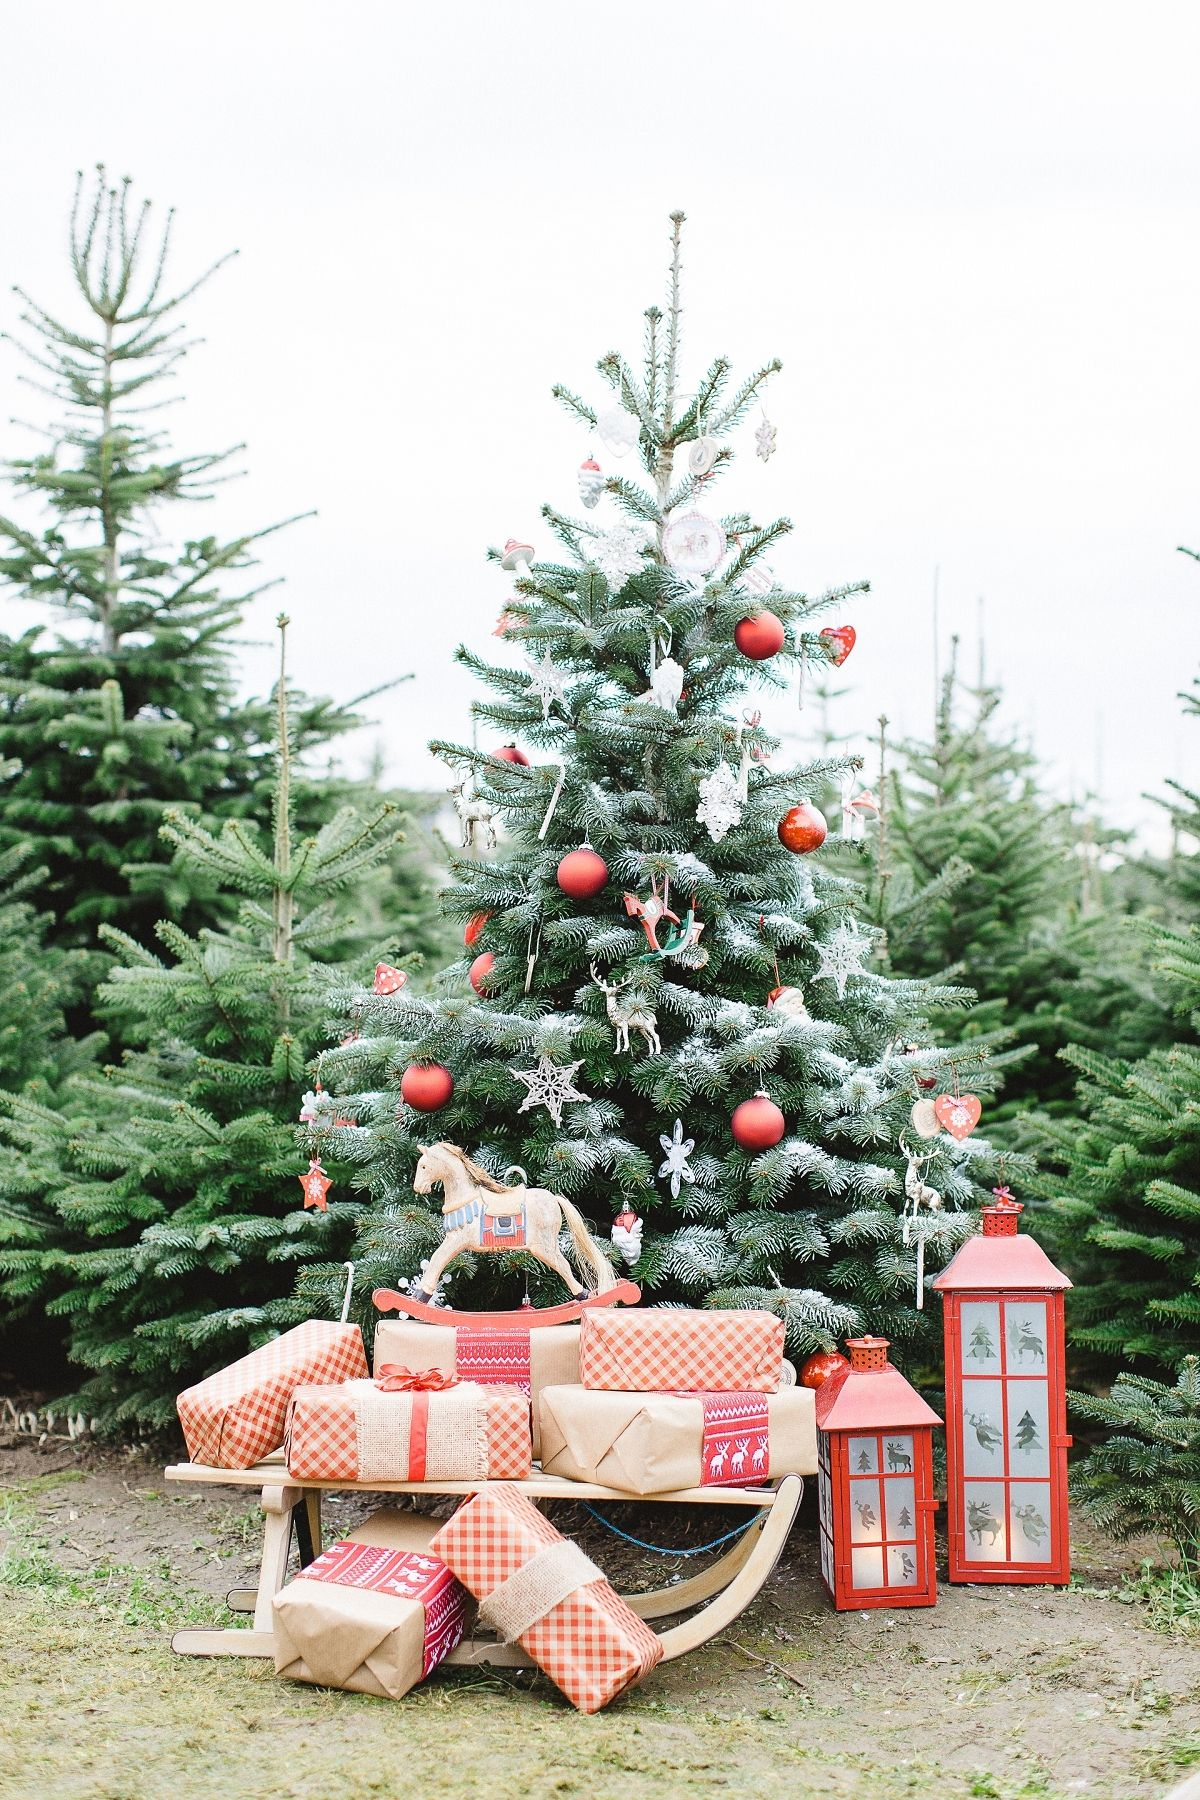 Festive Photo Shoot In Germany Outdoor Christmas Tree Outdoor Christmas Photos Photo Backdrop Christmas